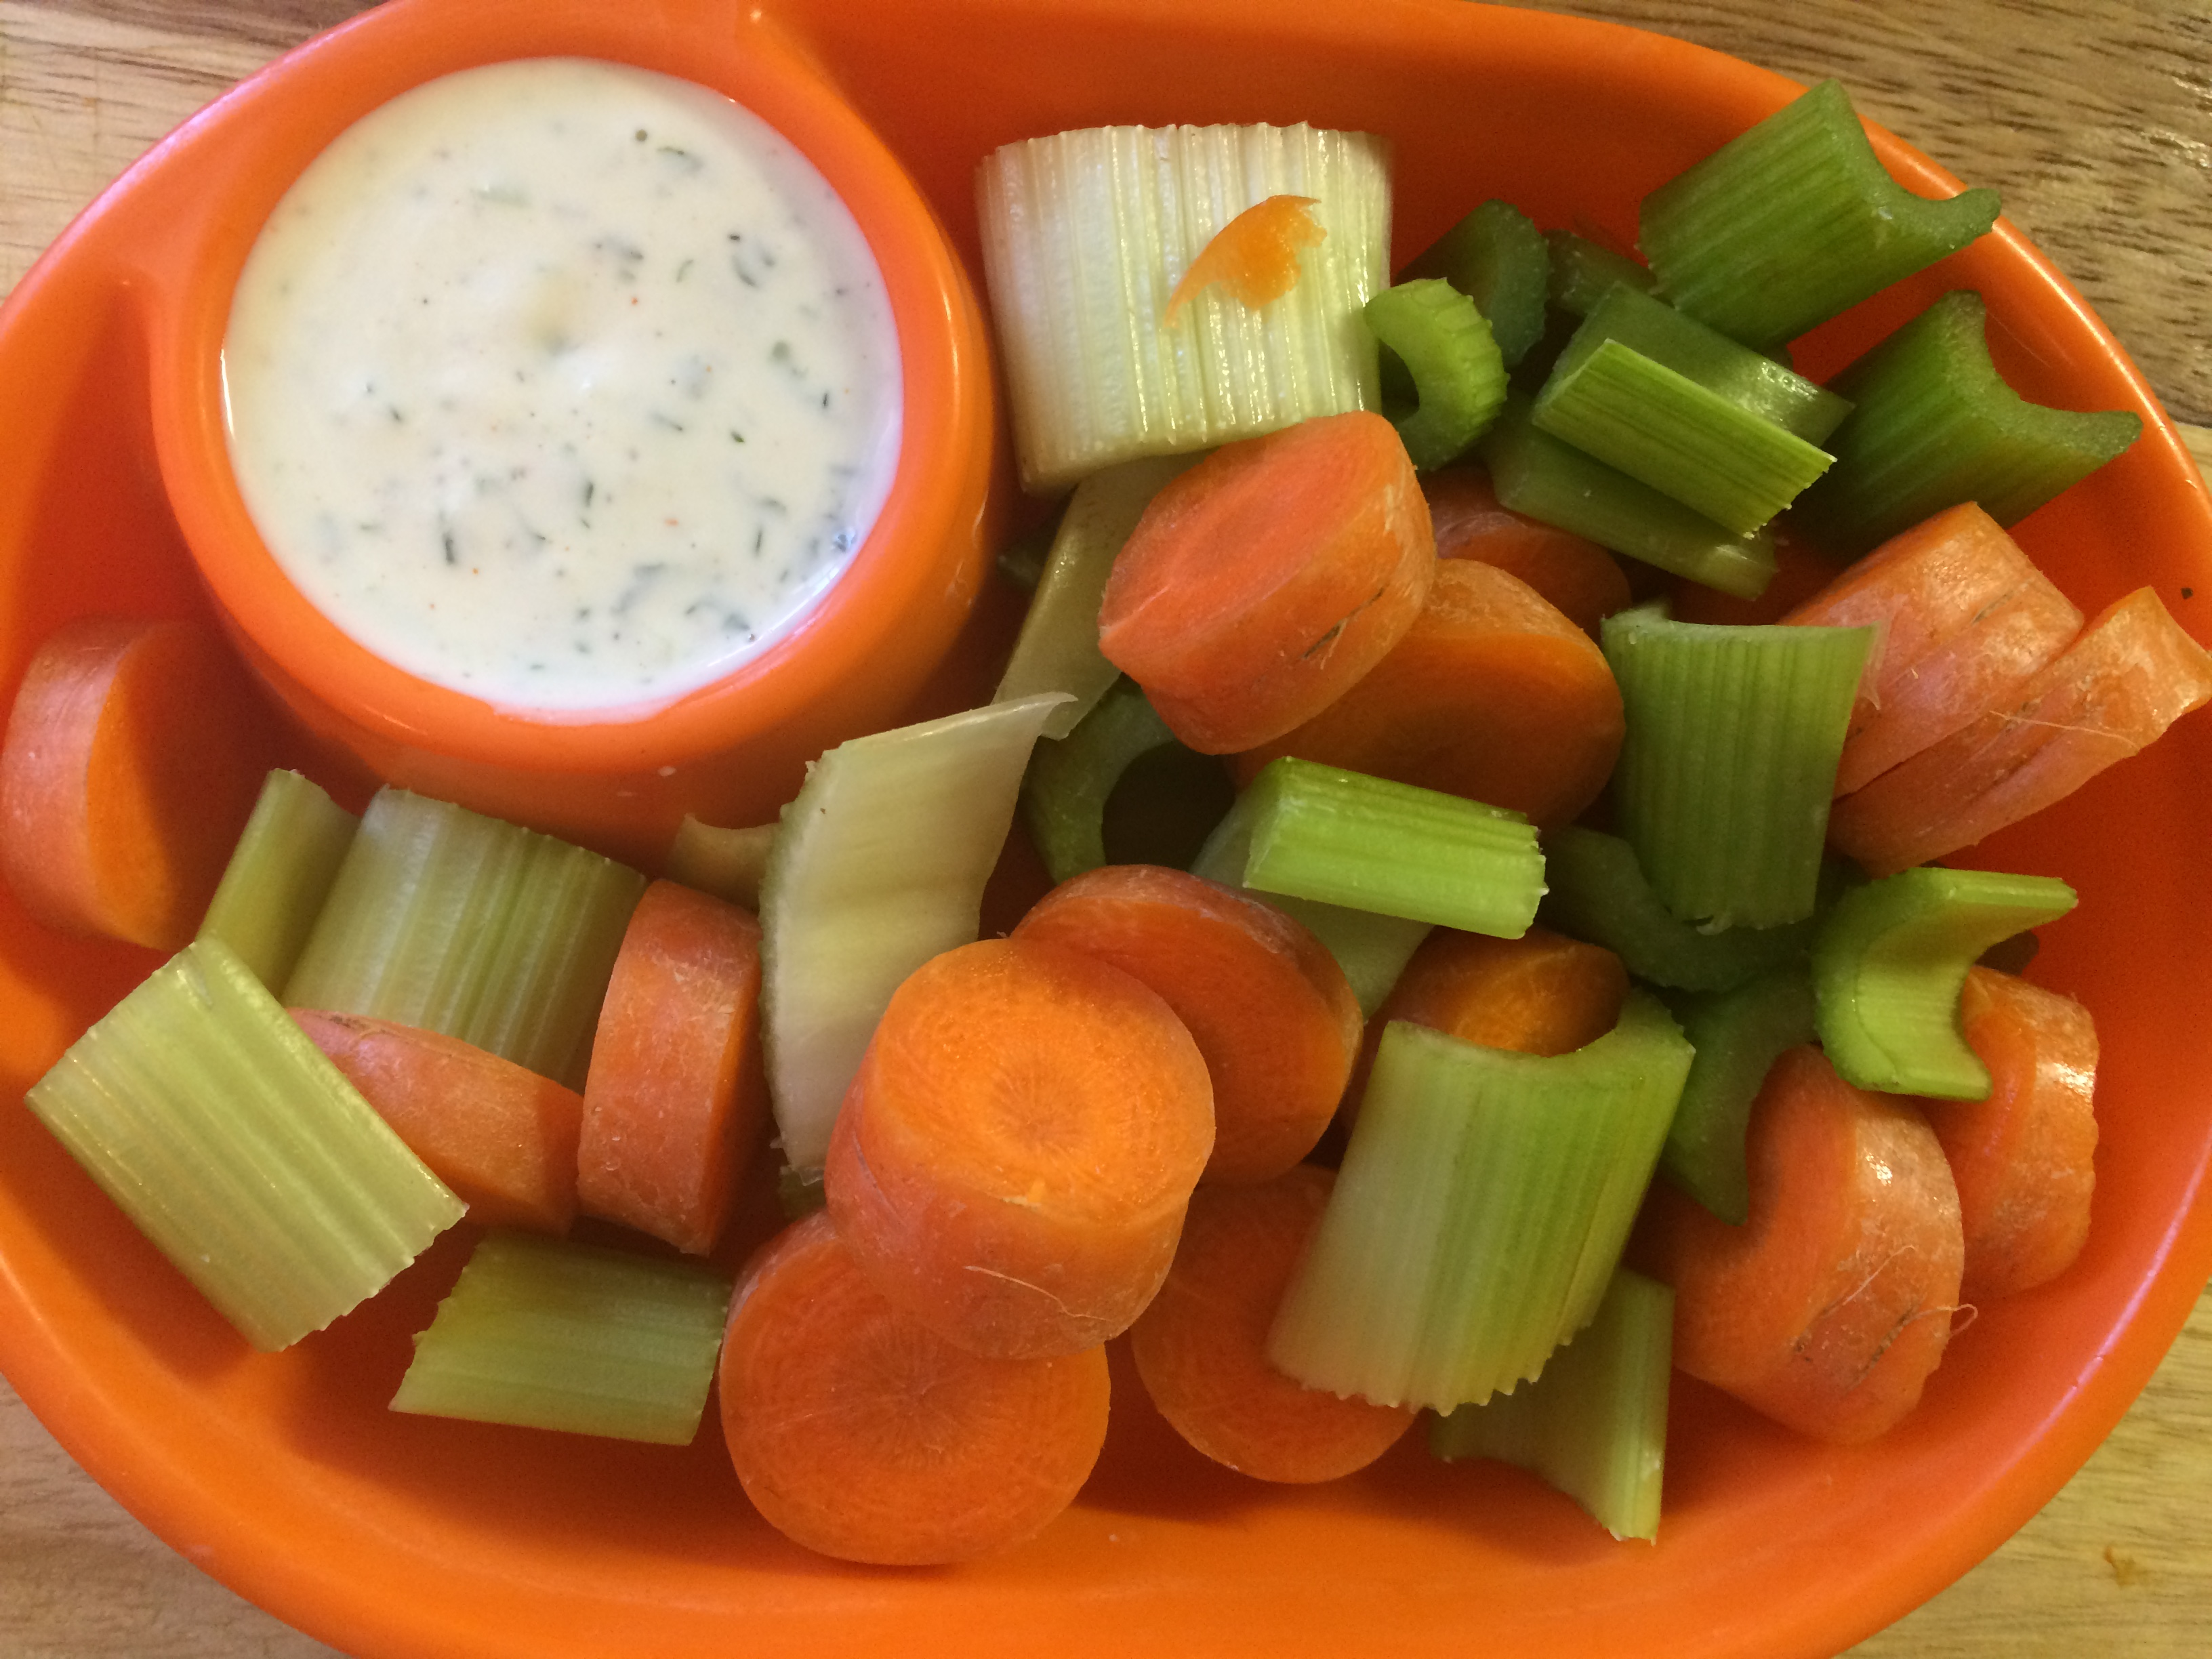 Ranch Dressing Dip with carrots and celery